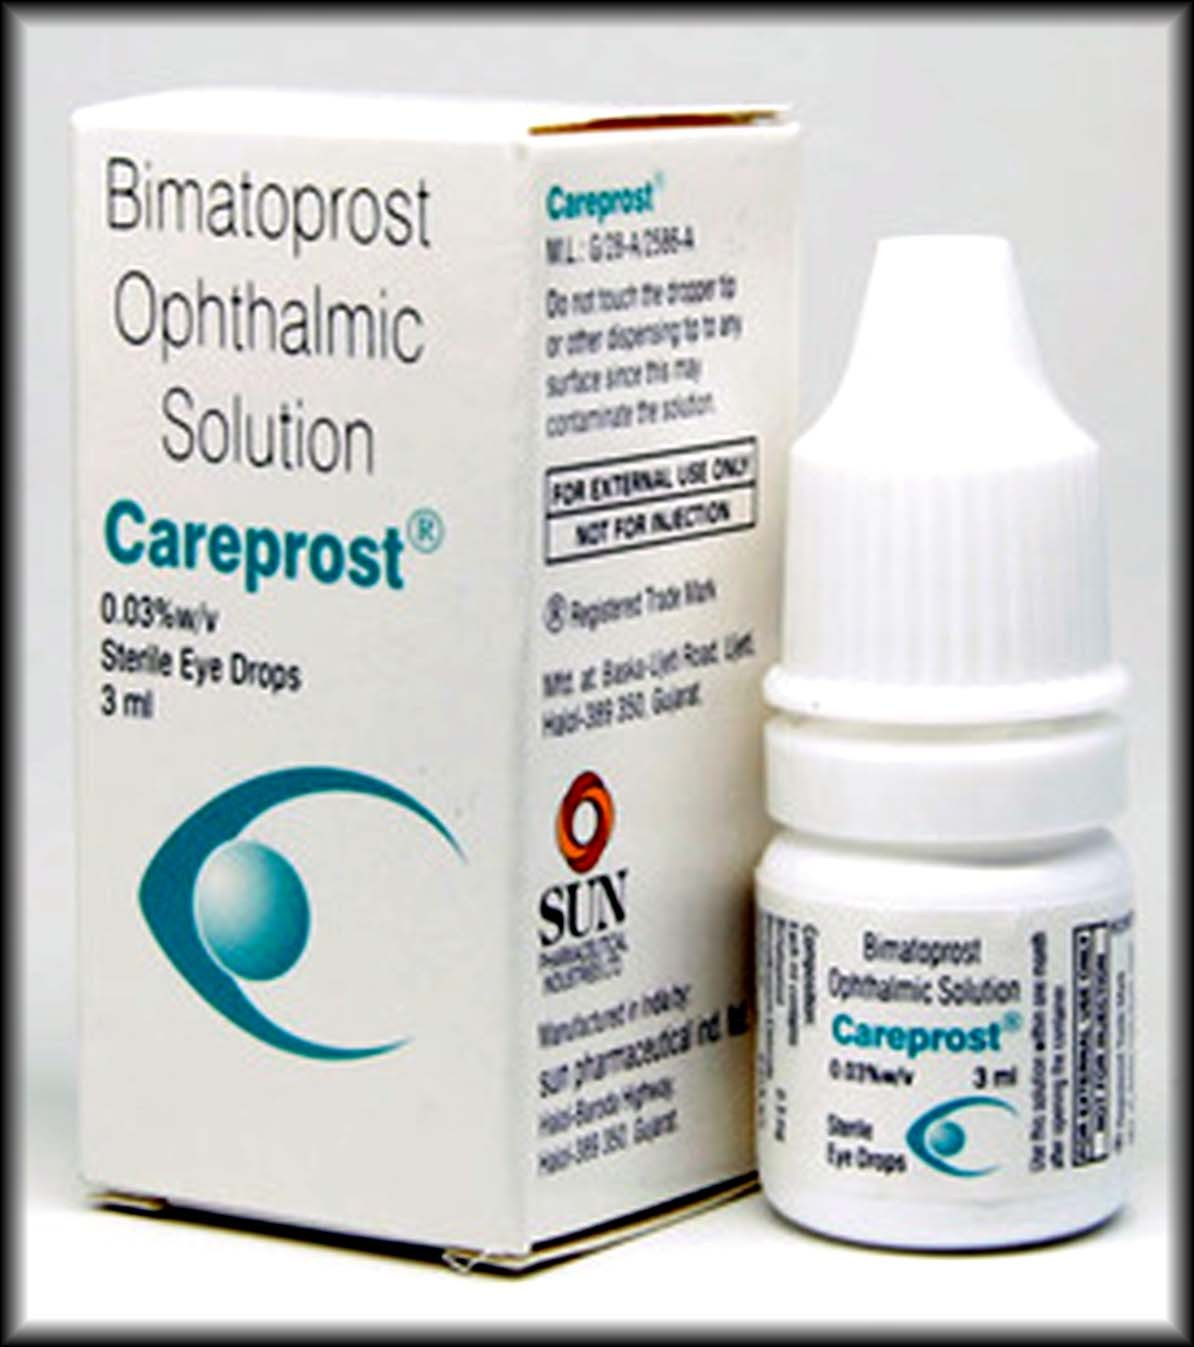 Purchase careprost online